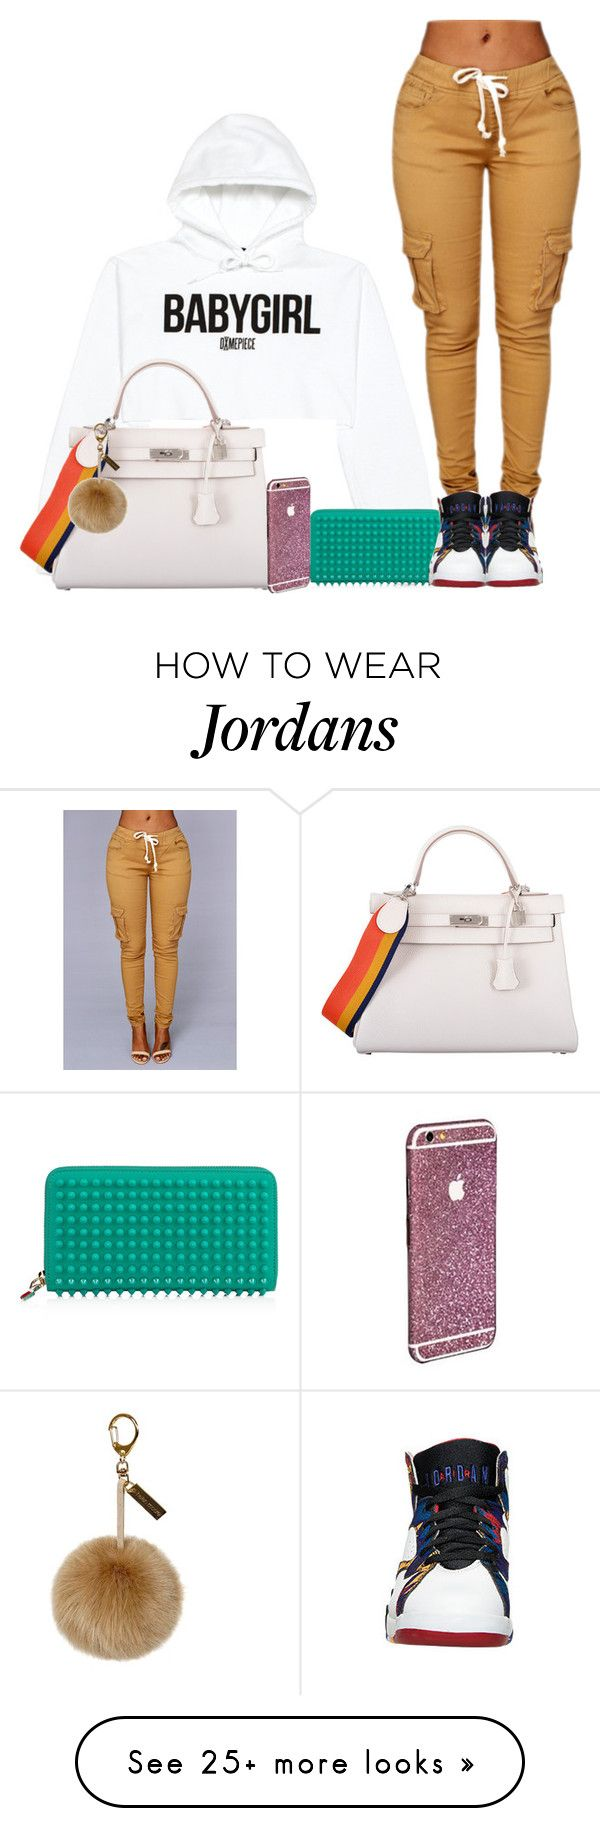 """""""20. Babygirl"""" by mamiina on Polyvore featuring VFiles, Christian Louboutin, Hermès, women's clothing, women, female, woman, misses and juniors"""